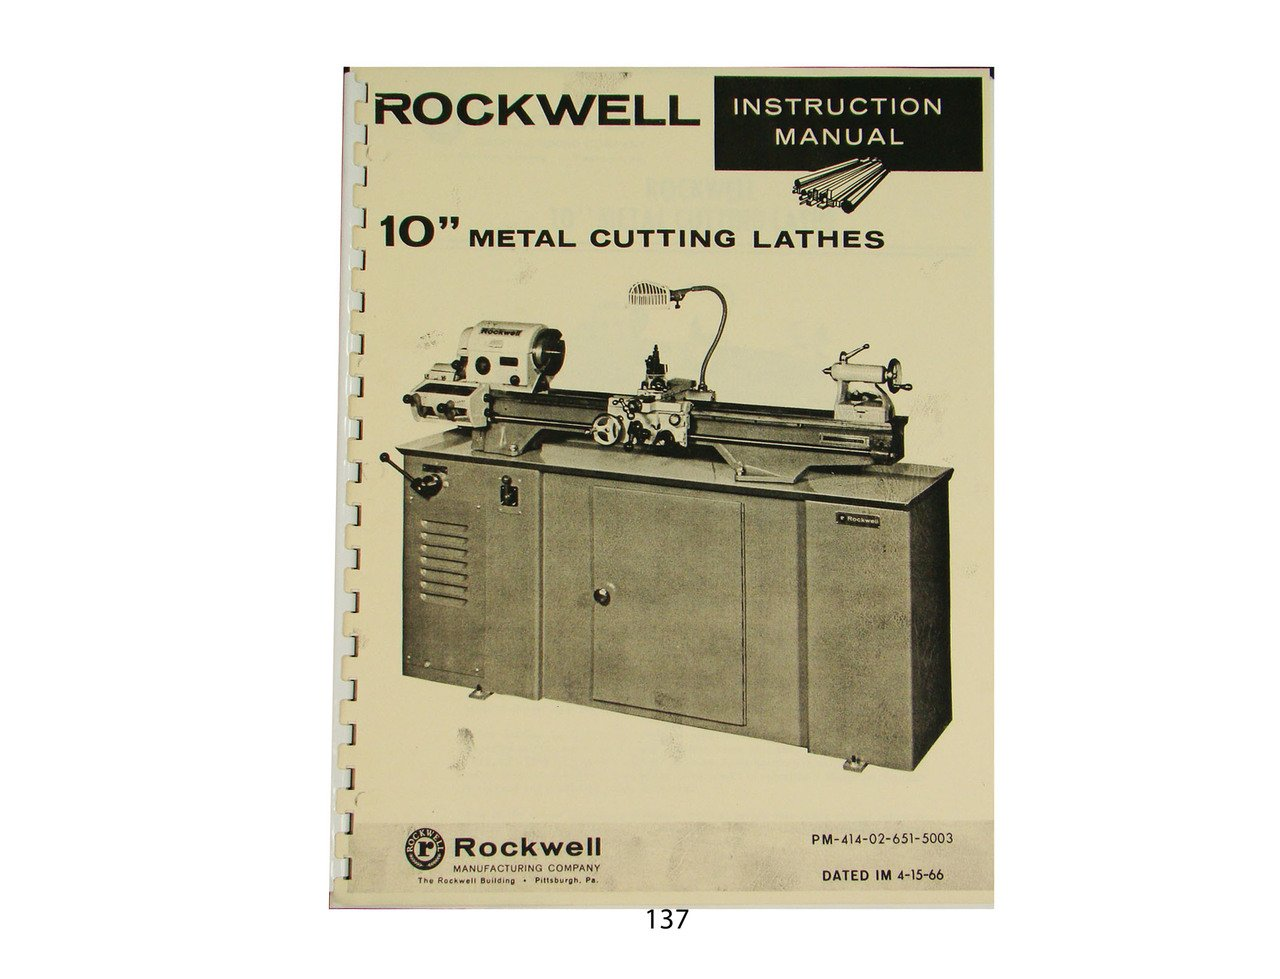 Rockwell 10 inch metal lathe instruction parts manual rockwell rockwell 10 inch metal lathe instruction parts manual rockwell amazon books fandeluxe Choice Image